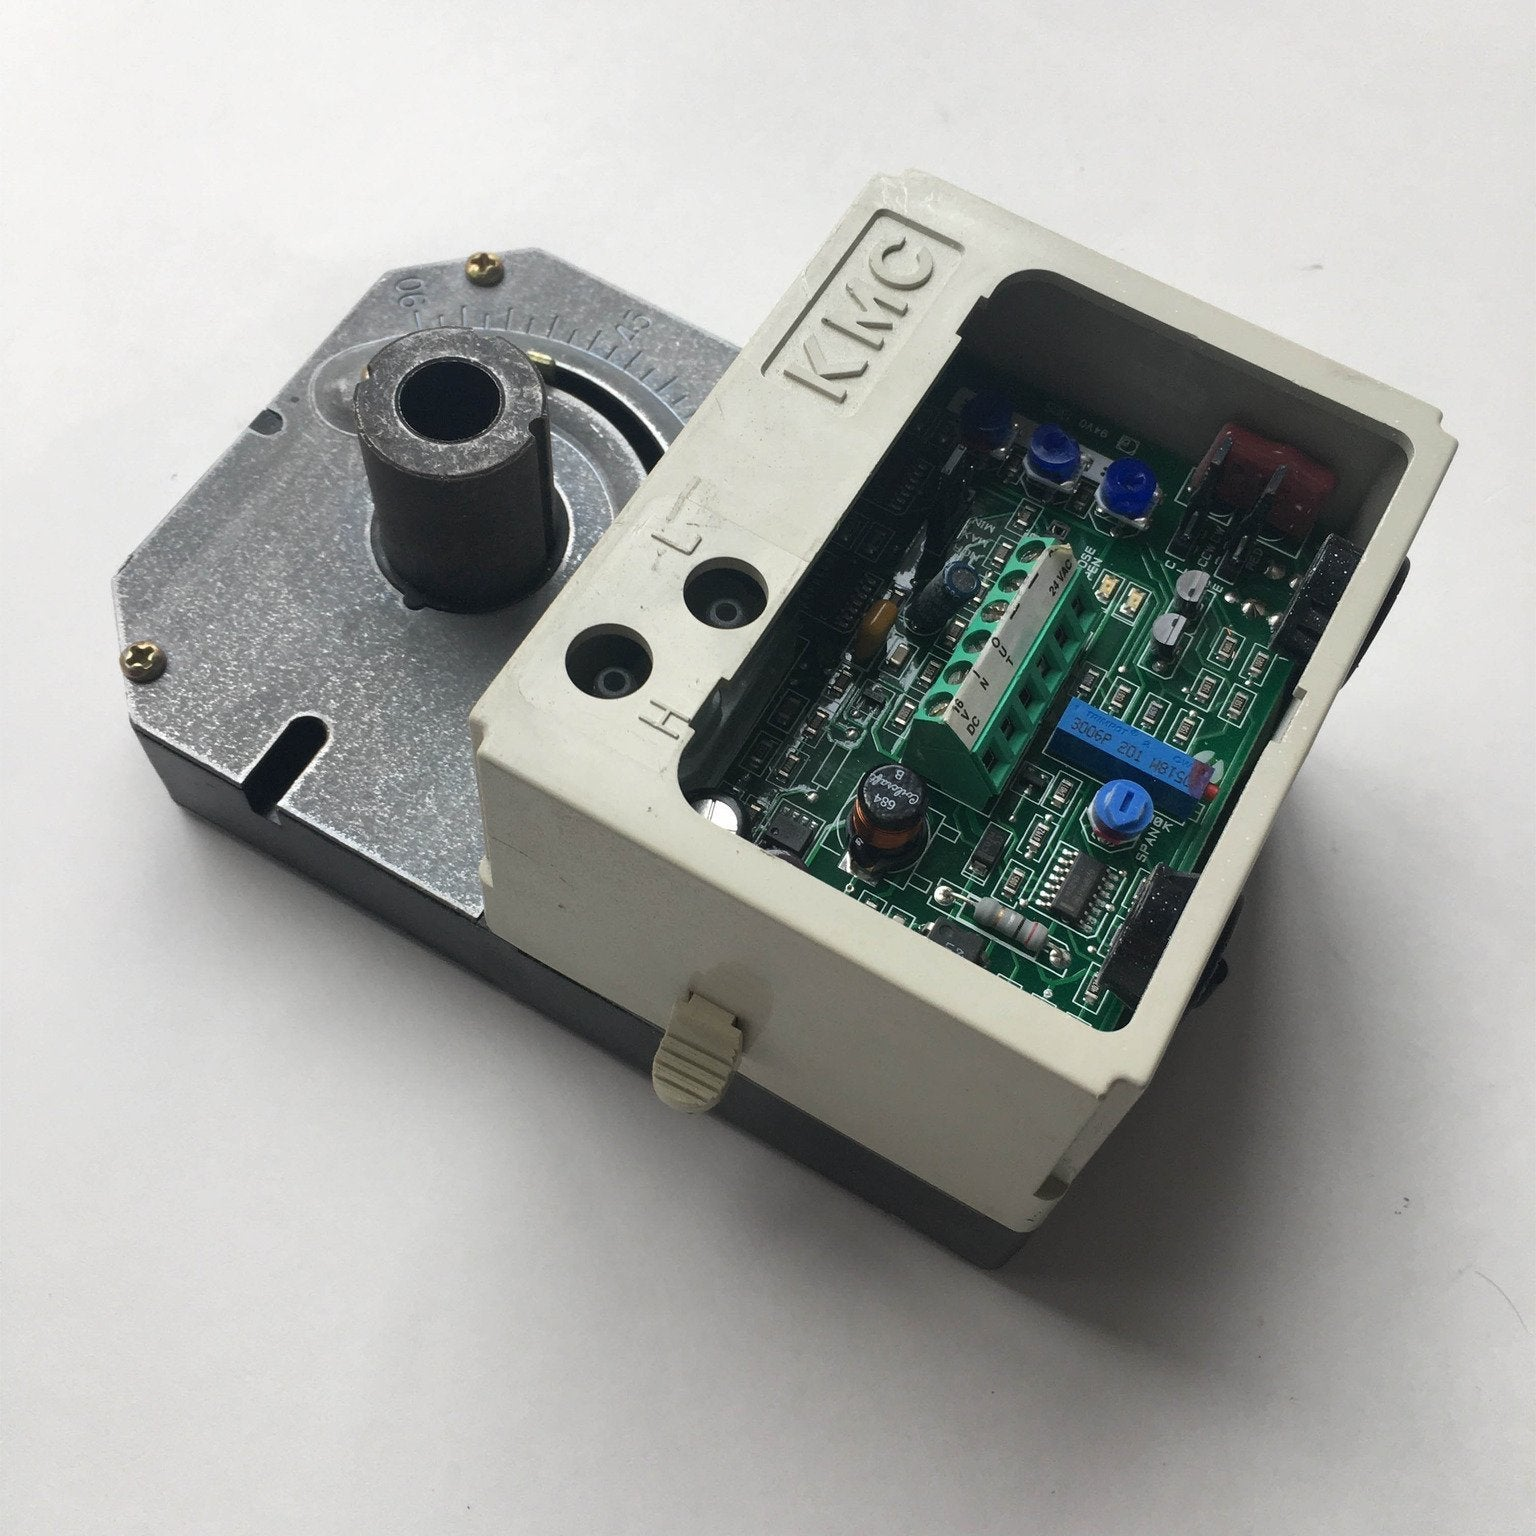 KMC CSP-5001 Controller with Actuator